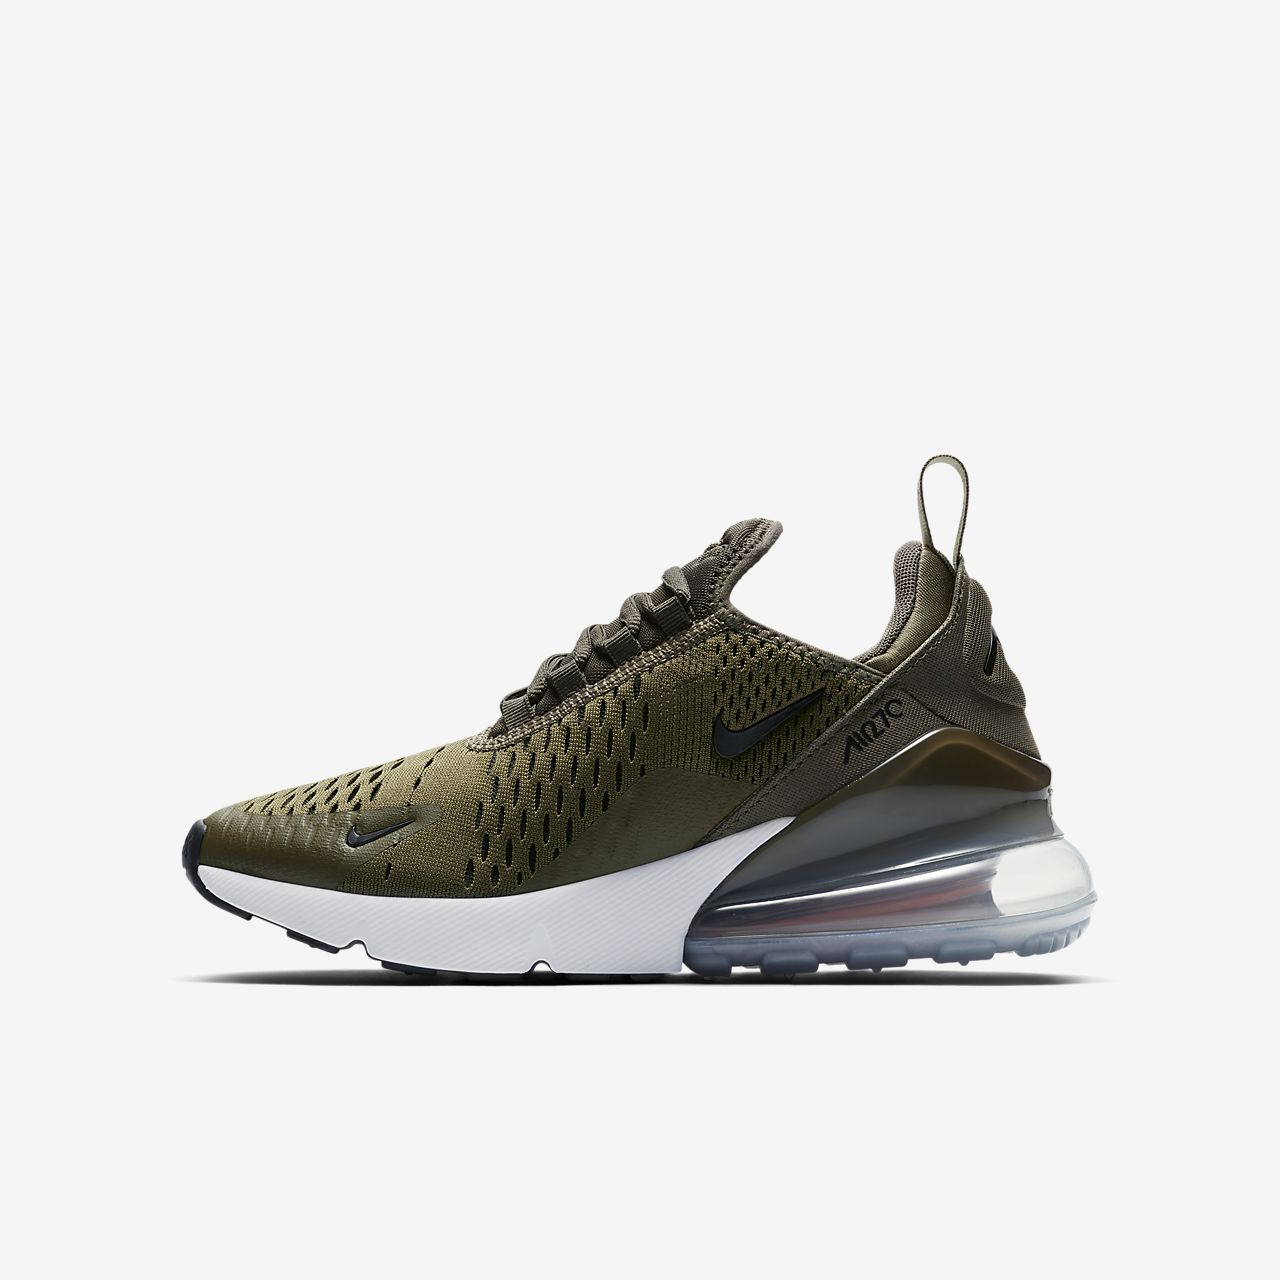 Air Max 270 Flyknit - Chaussures - Bas-tops Et Baskets Nike Up8E4